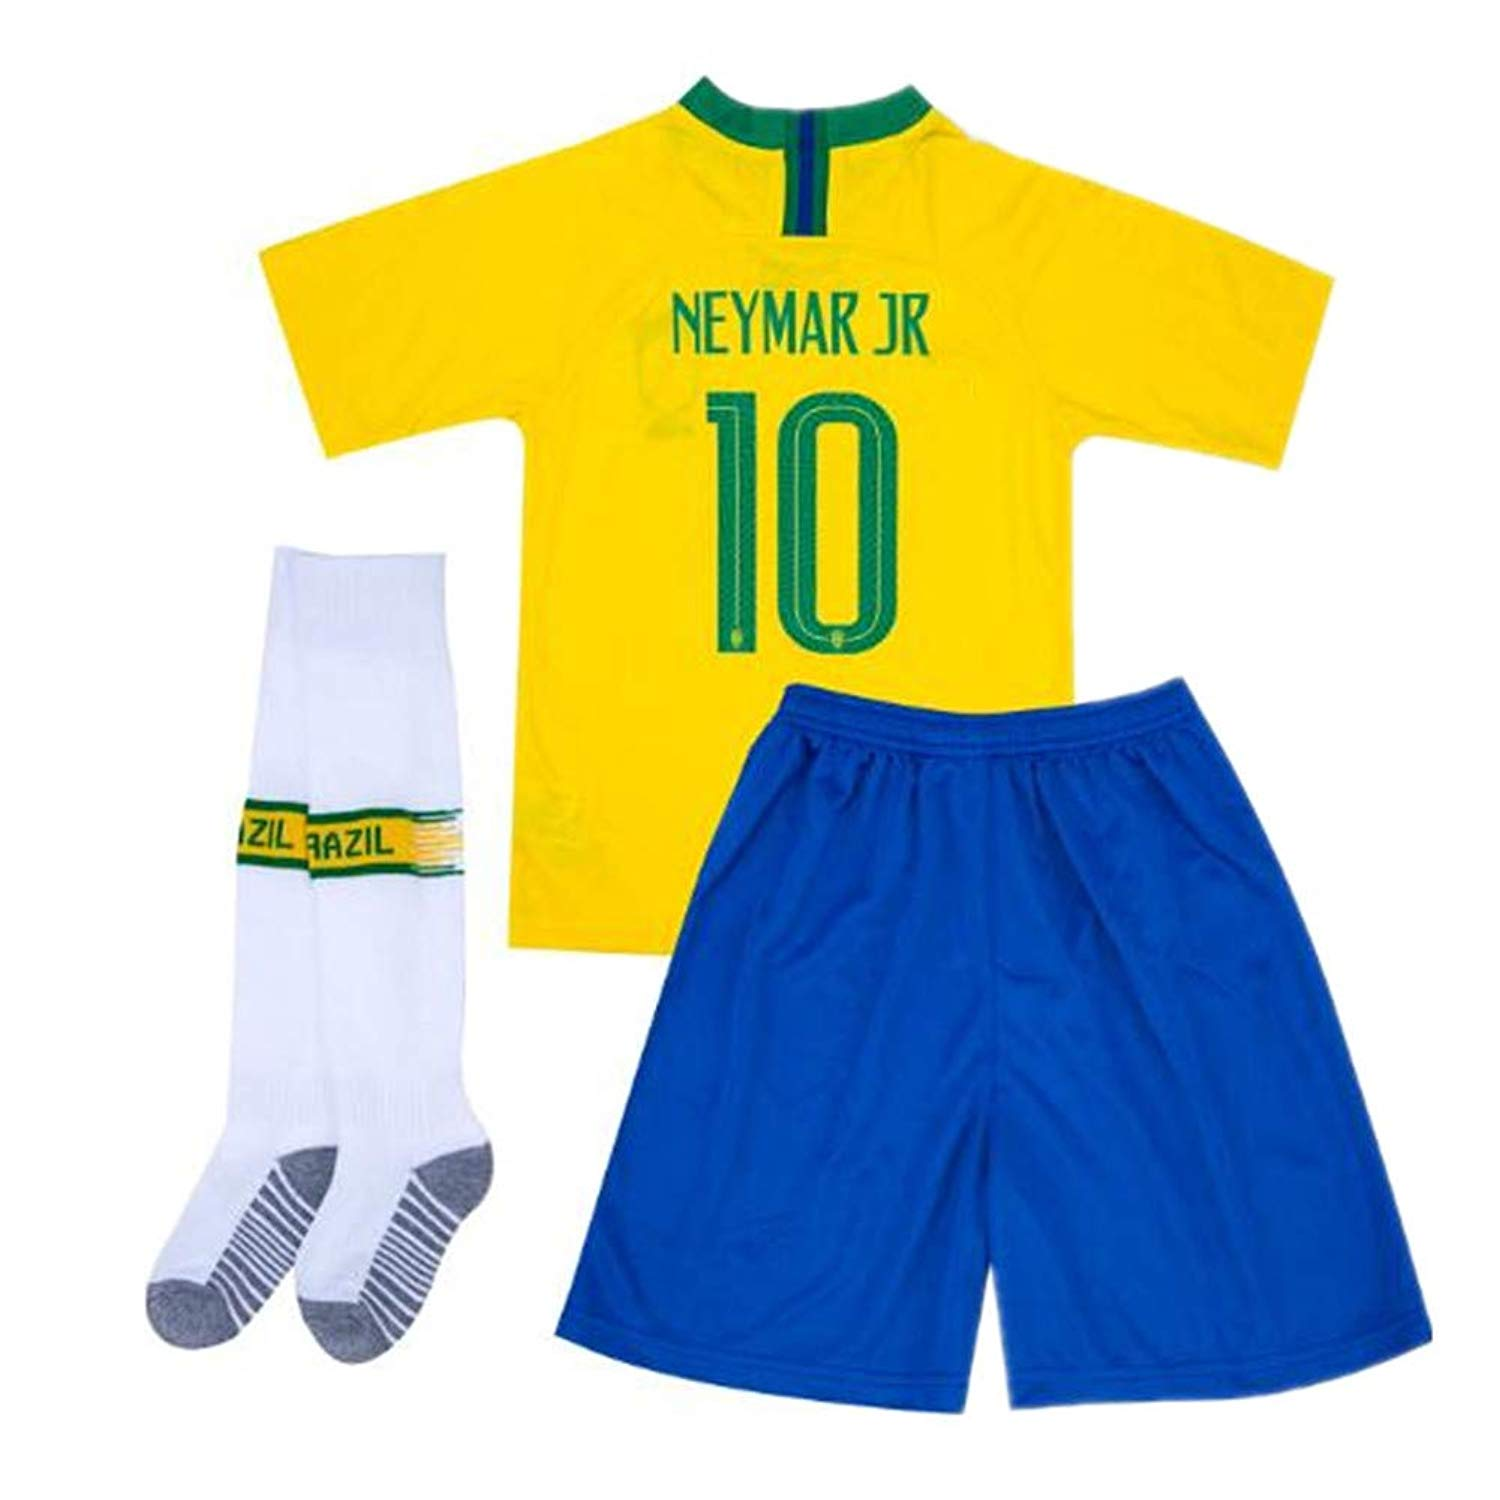 8c281b934 Get Quotations · Neymar JR  10 Brazil 2018 World Cup Kids Soccer Jersey  Matching Shorts